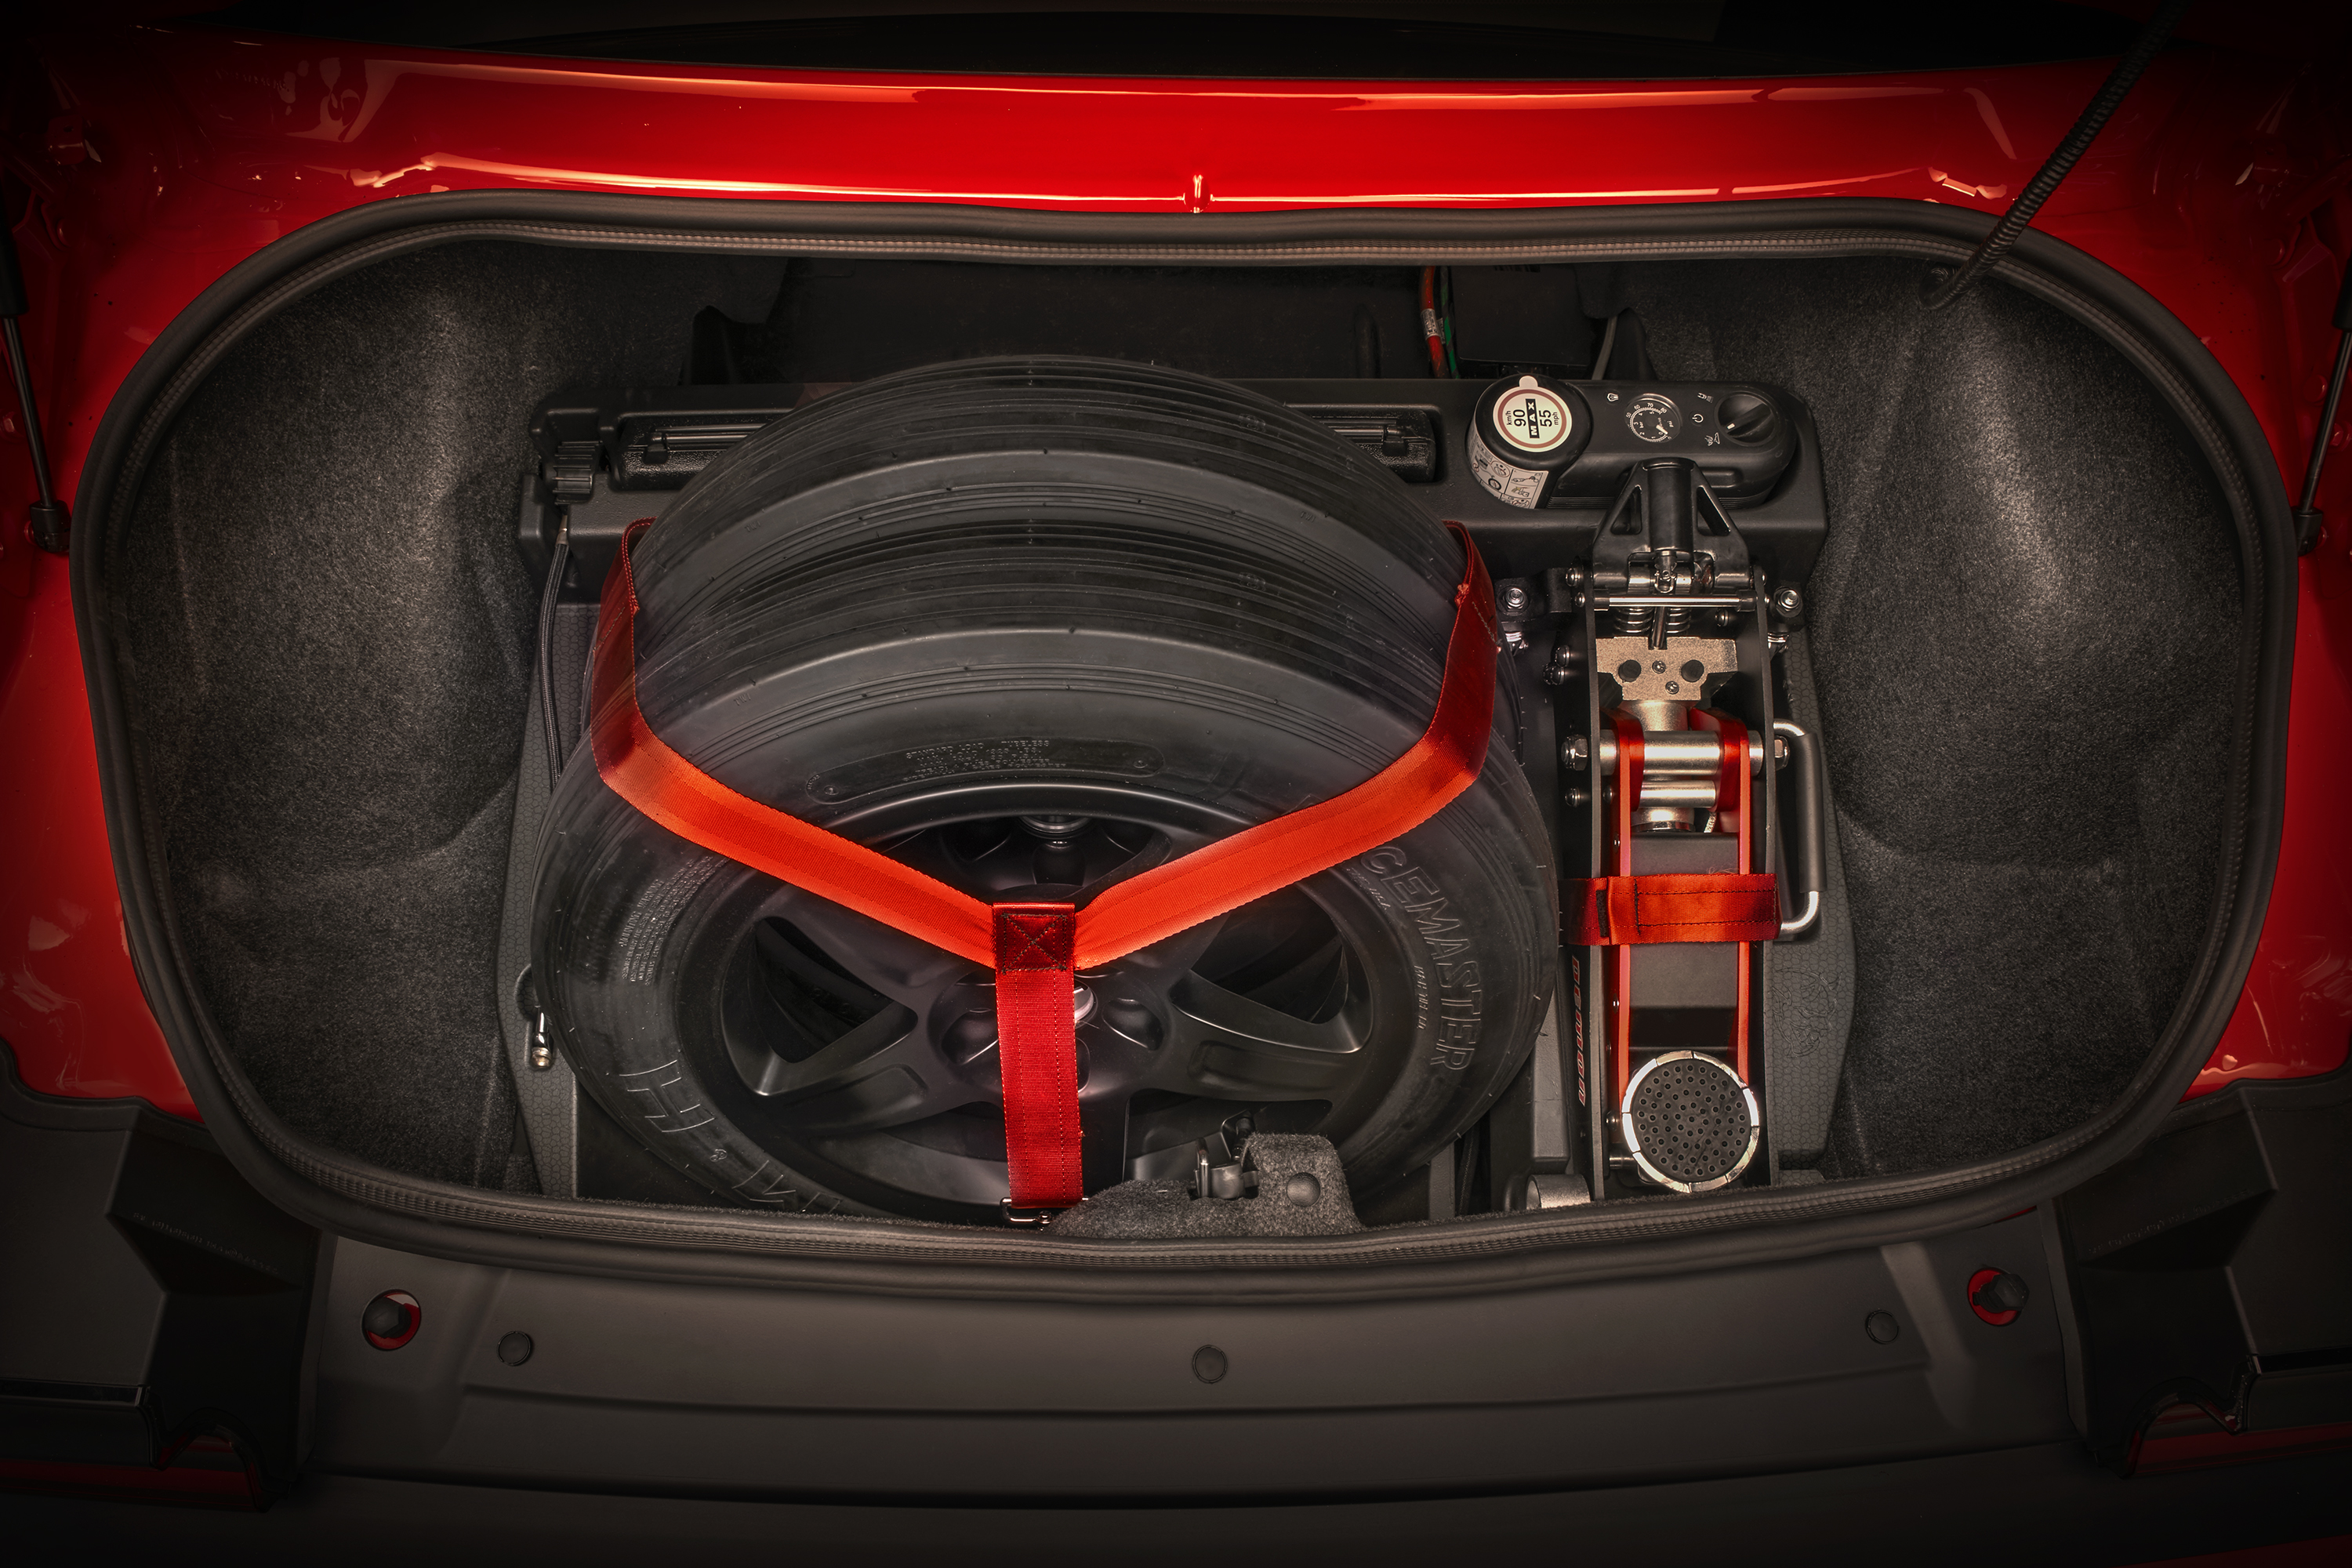 The 840 Horsepower 2018 Dodge Challenger Srt Demon Operating Range 2500 6300rpm Required Fuel 91 Octane Pump Drag Kit Features A Track